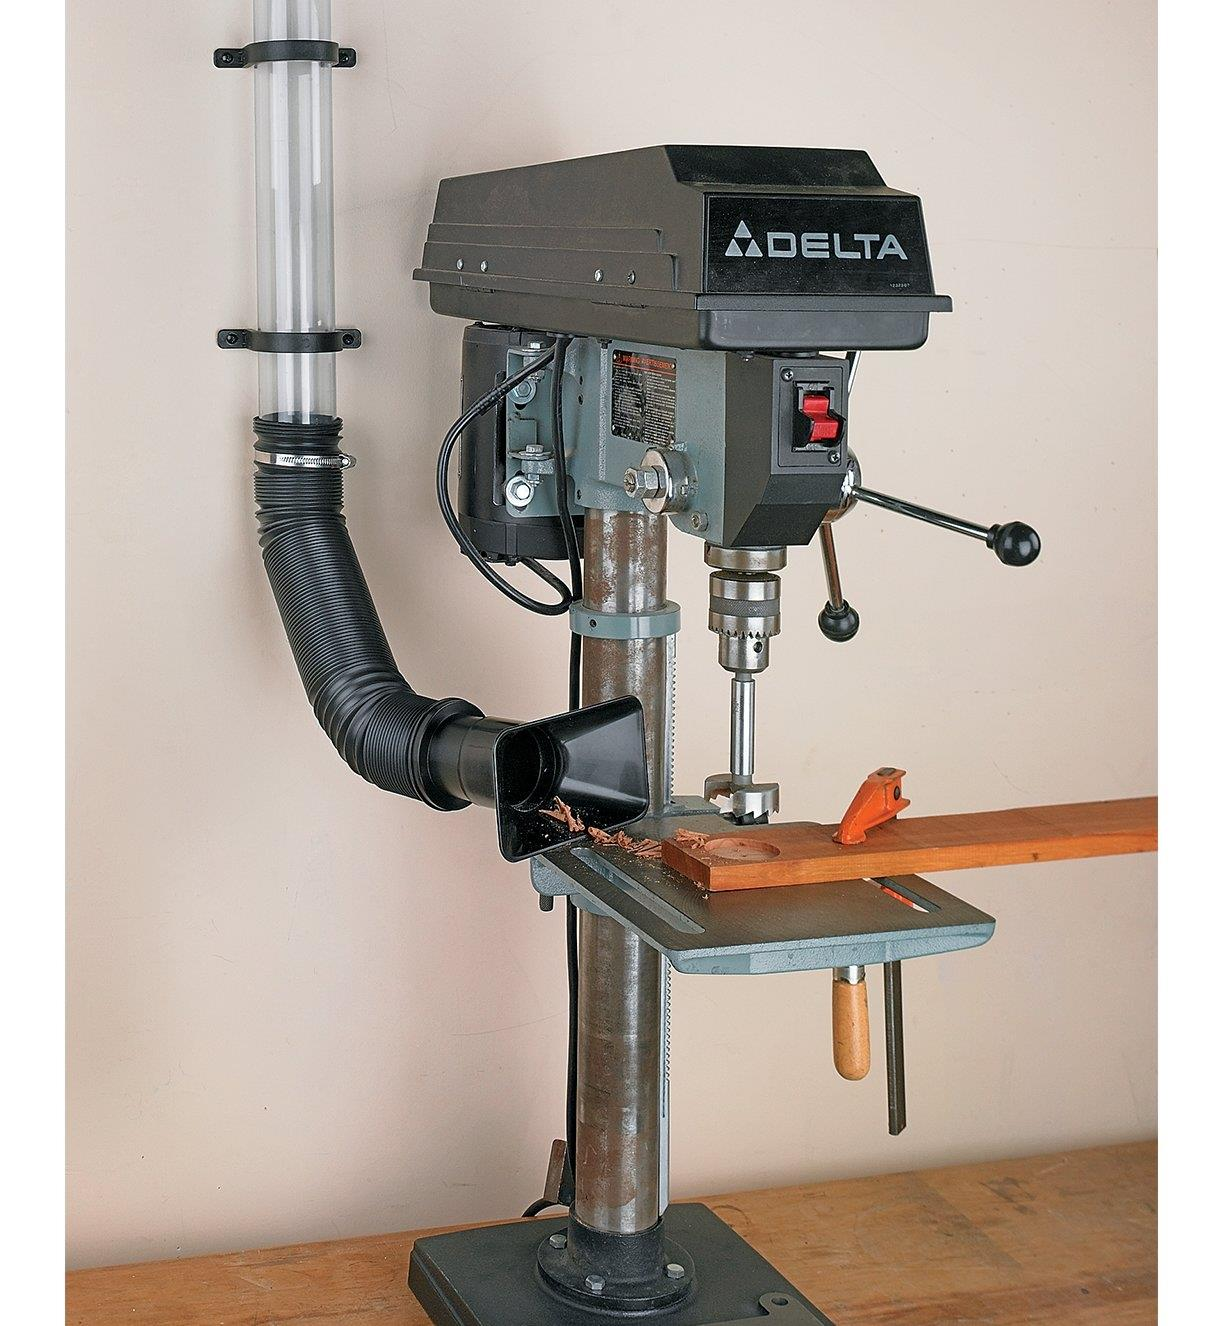 Expandable Vacuum Hose and nozzle collecting dust from a drill press table